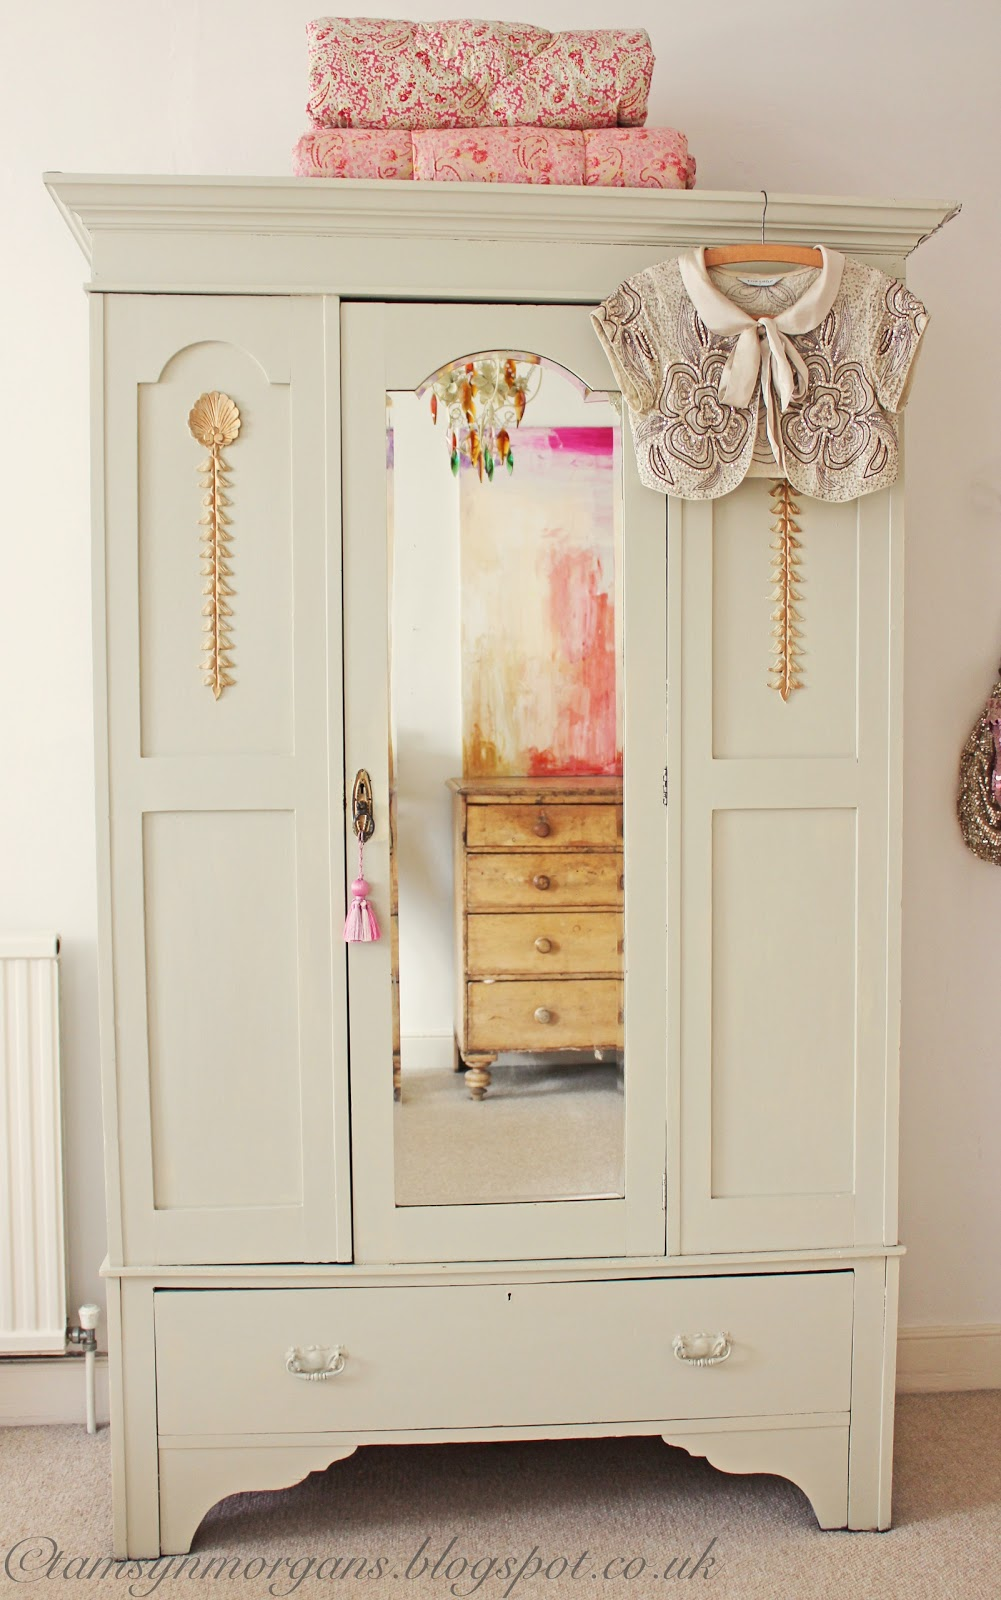 My Shabby Chic Wardrobe on Victorian Bedroom Furniture